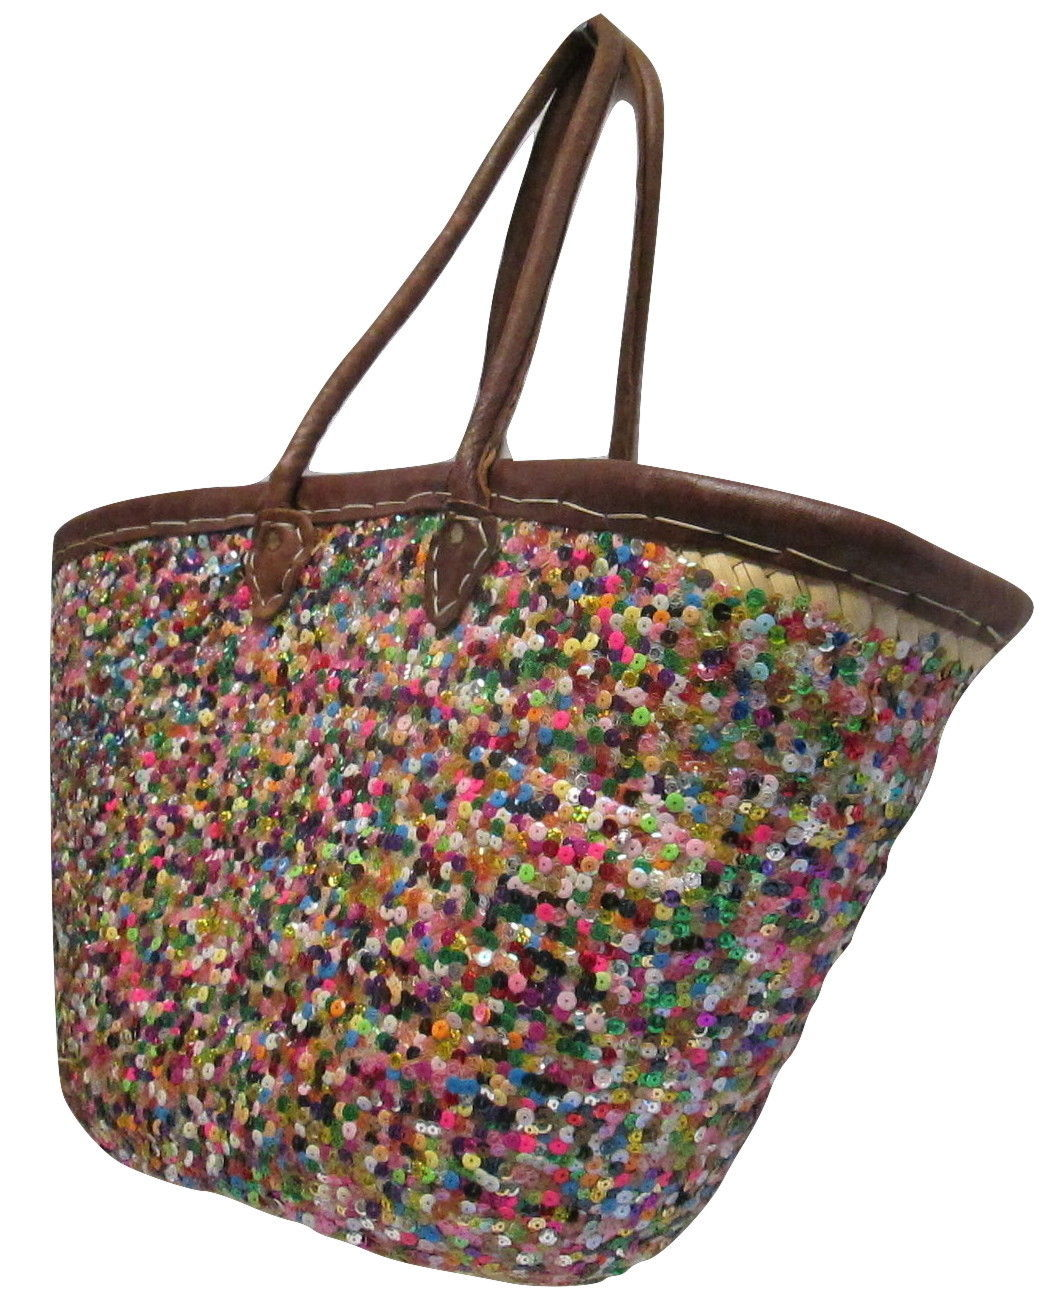 French Market Basket Sparkling Sequin & Leather Straw Tote Bag Moroccan Multi